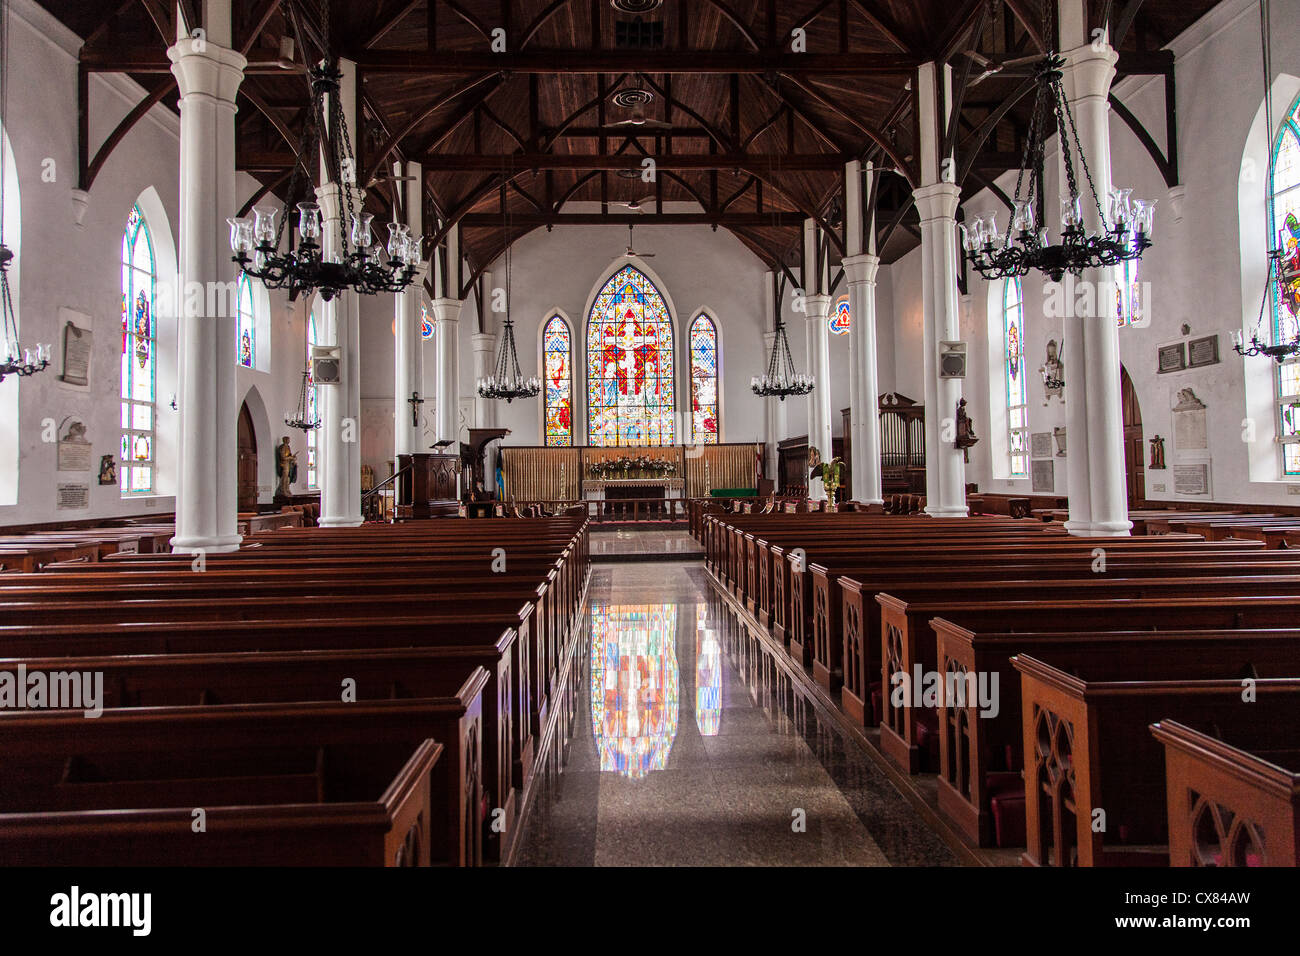 Interior of the Christ Church Cathedral Anglican Church in Nassau , Bahamas. Stock Photo